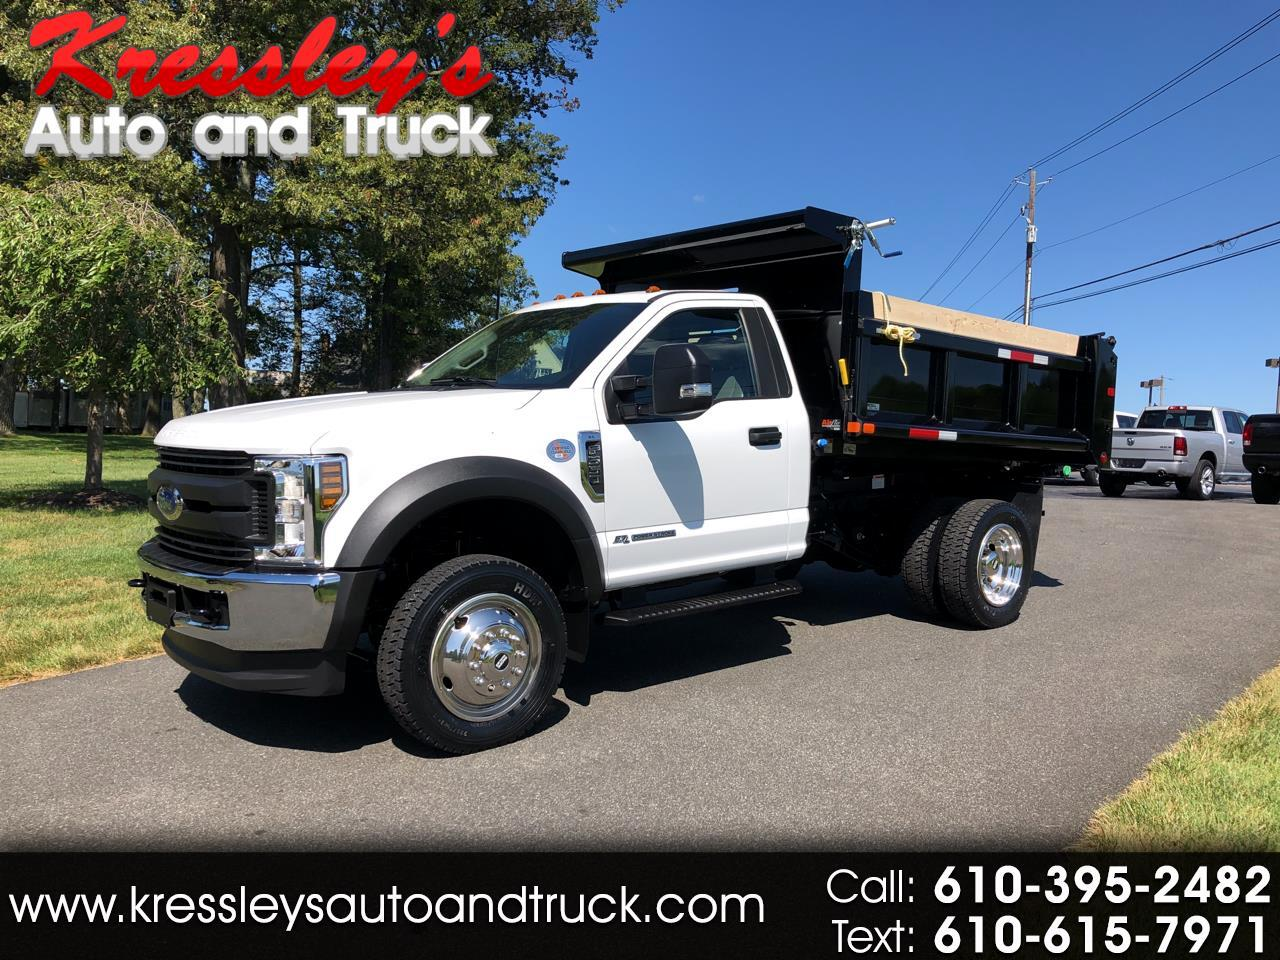 2018 Ford Super Duty F-550 DRW XL 4WD Reg Cab 145